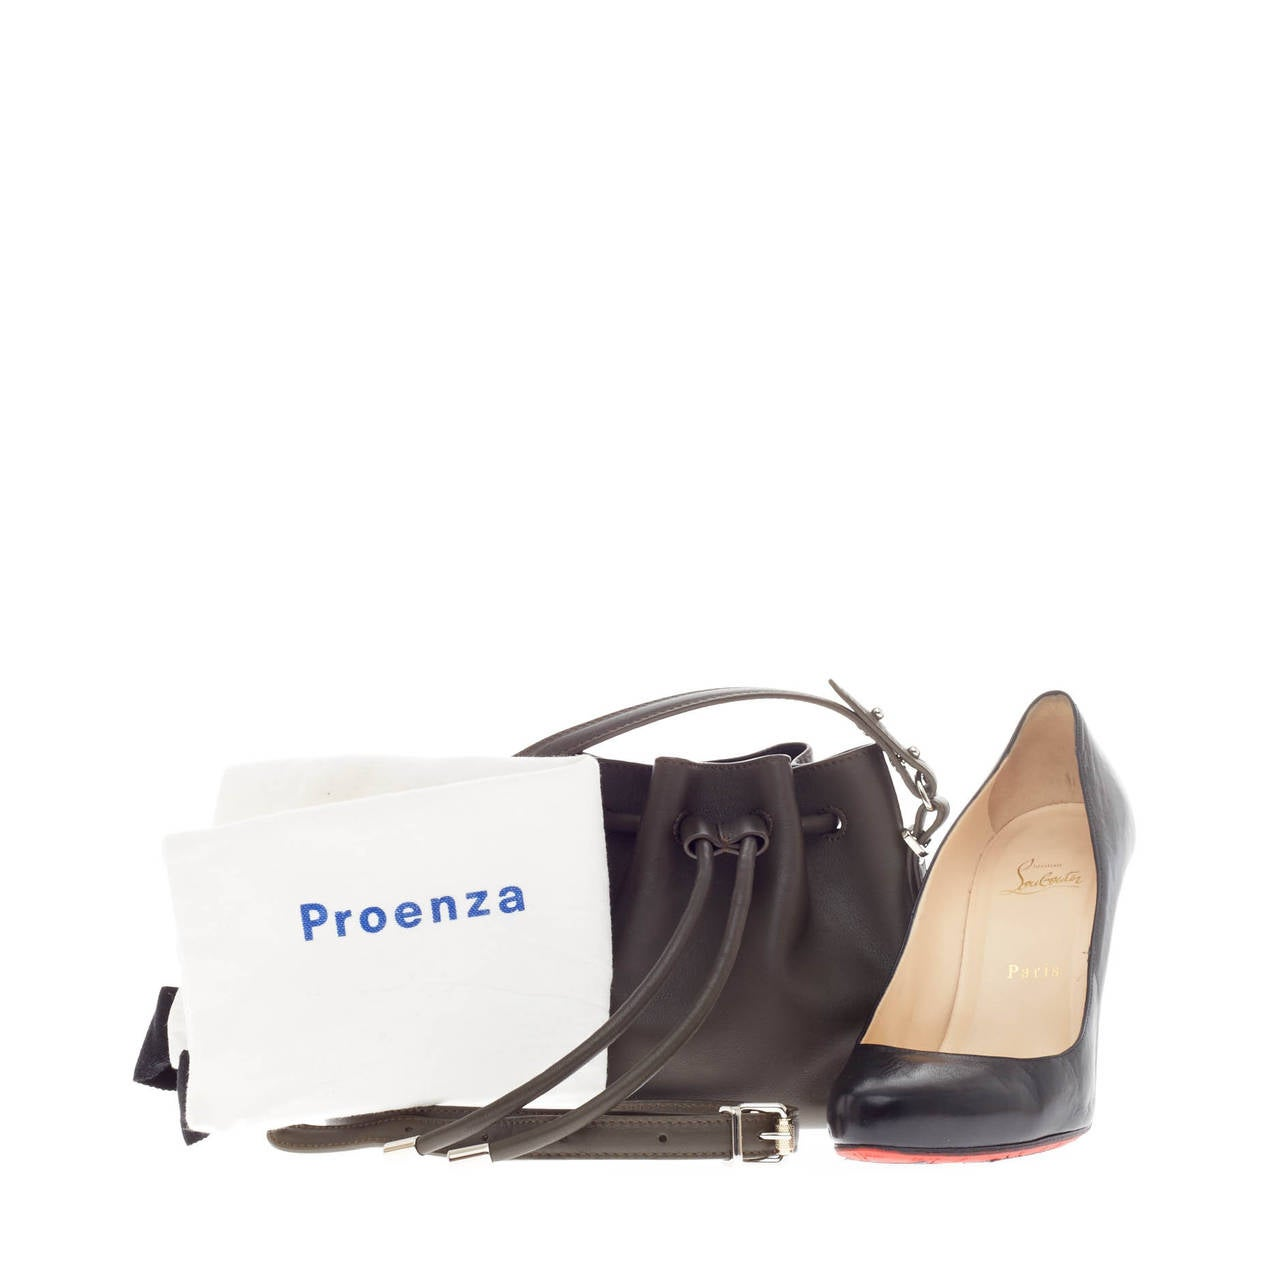 This authentic Proenza Schouler Bucket Bag Leather Tiny showcases a miniature style perfect for a care free on-the-go woman. Crafted in rich dark brown calfskin leather, this petite minimalist bucket bag features silver-tone hardware accents and a